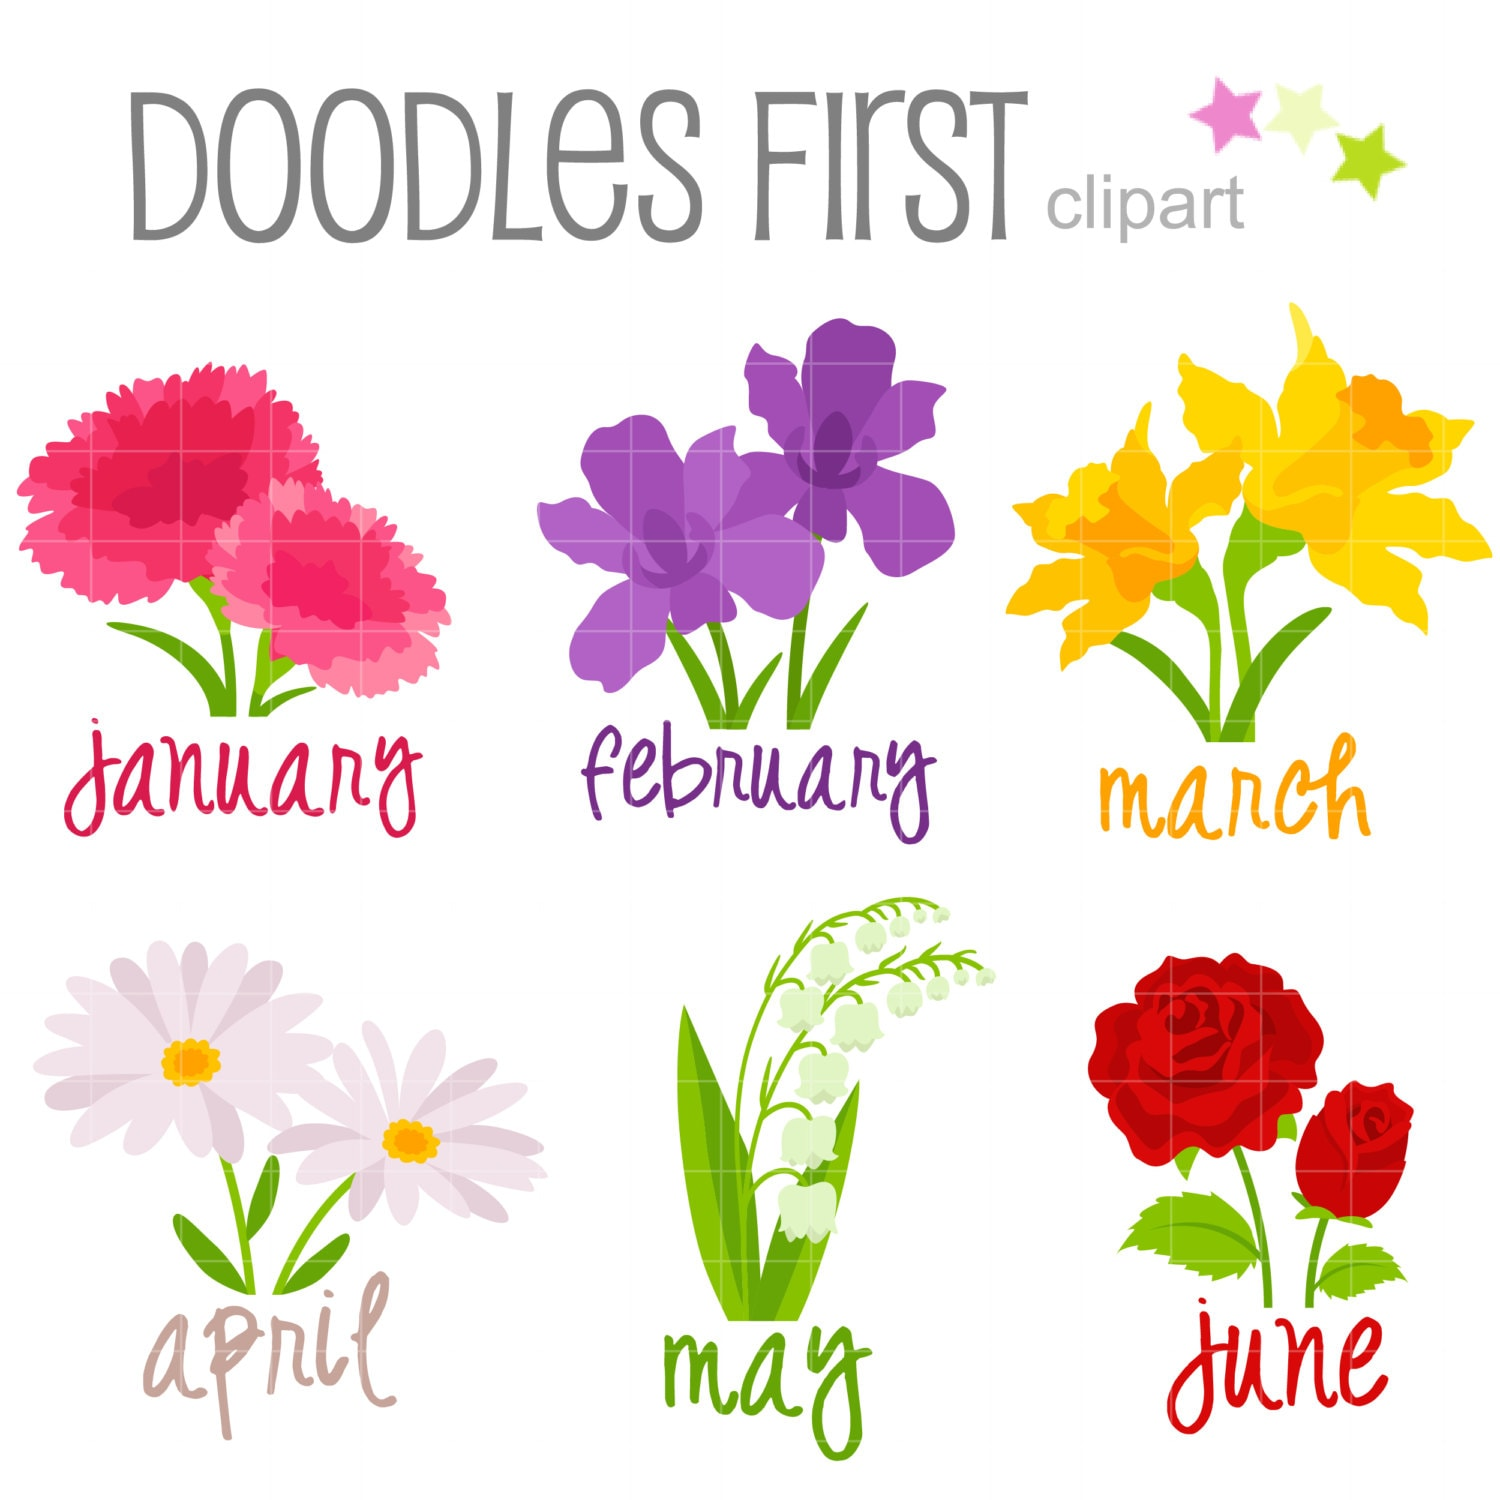 January flower of the month